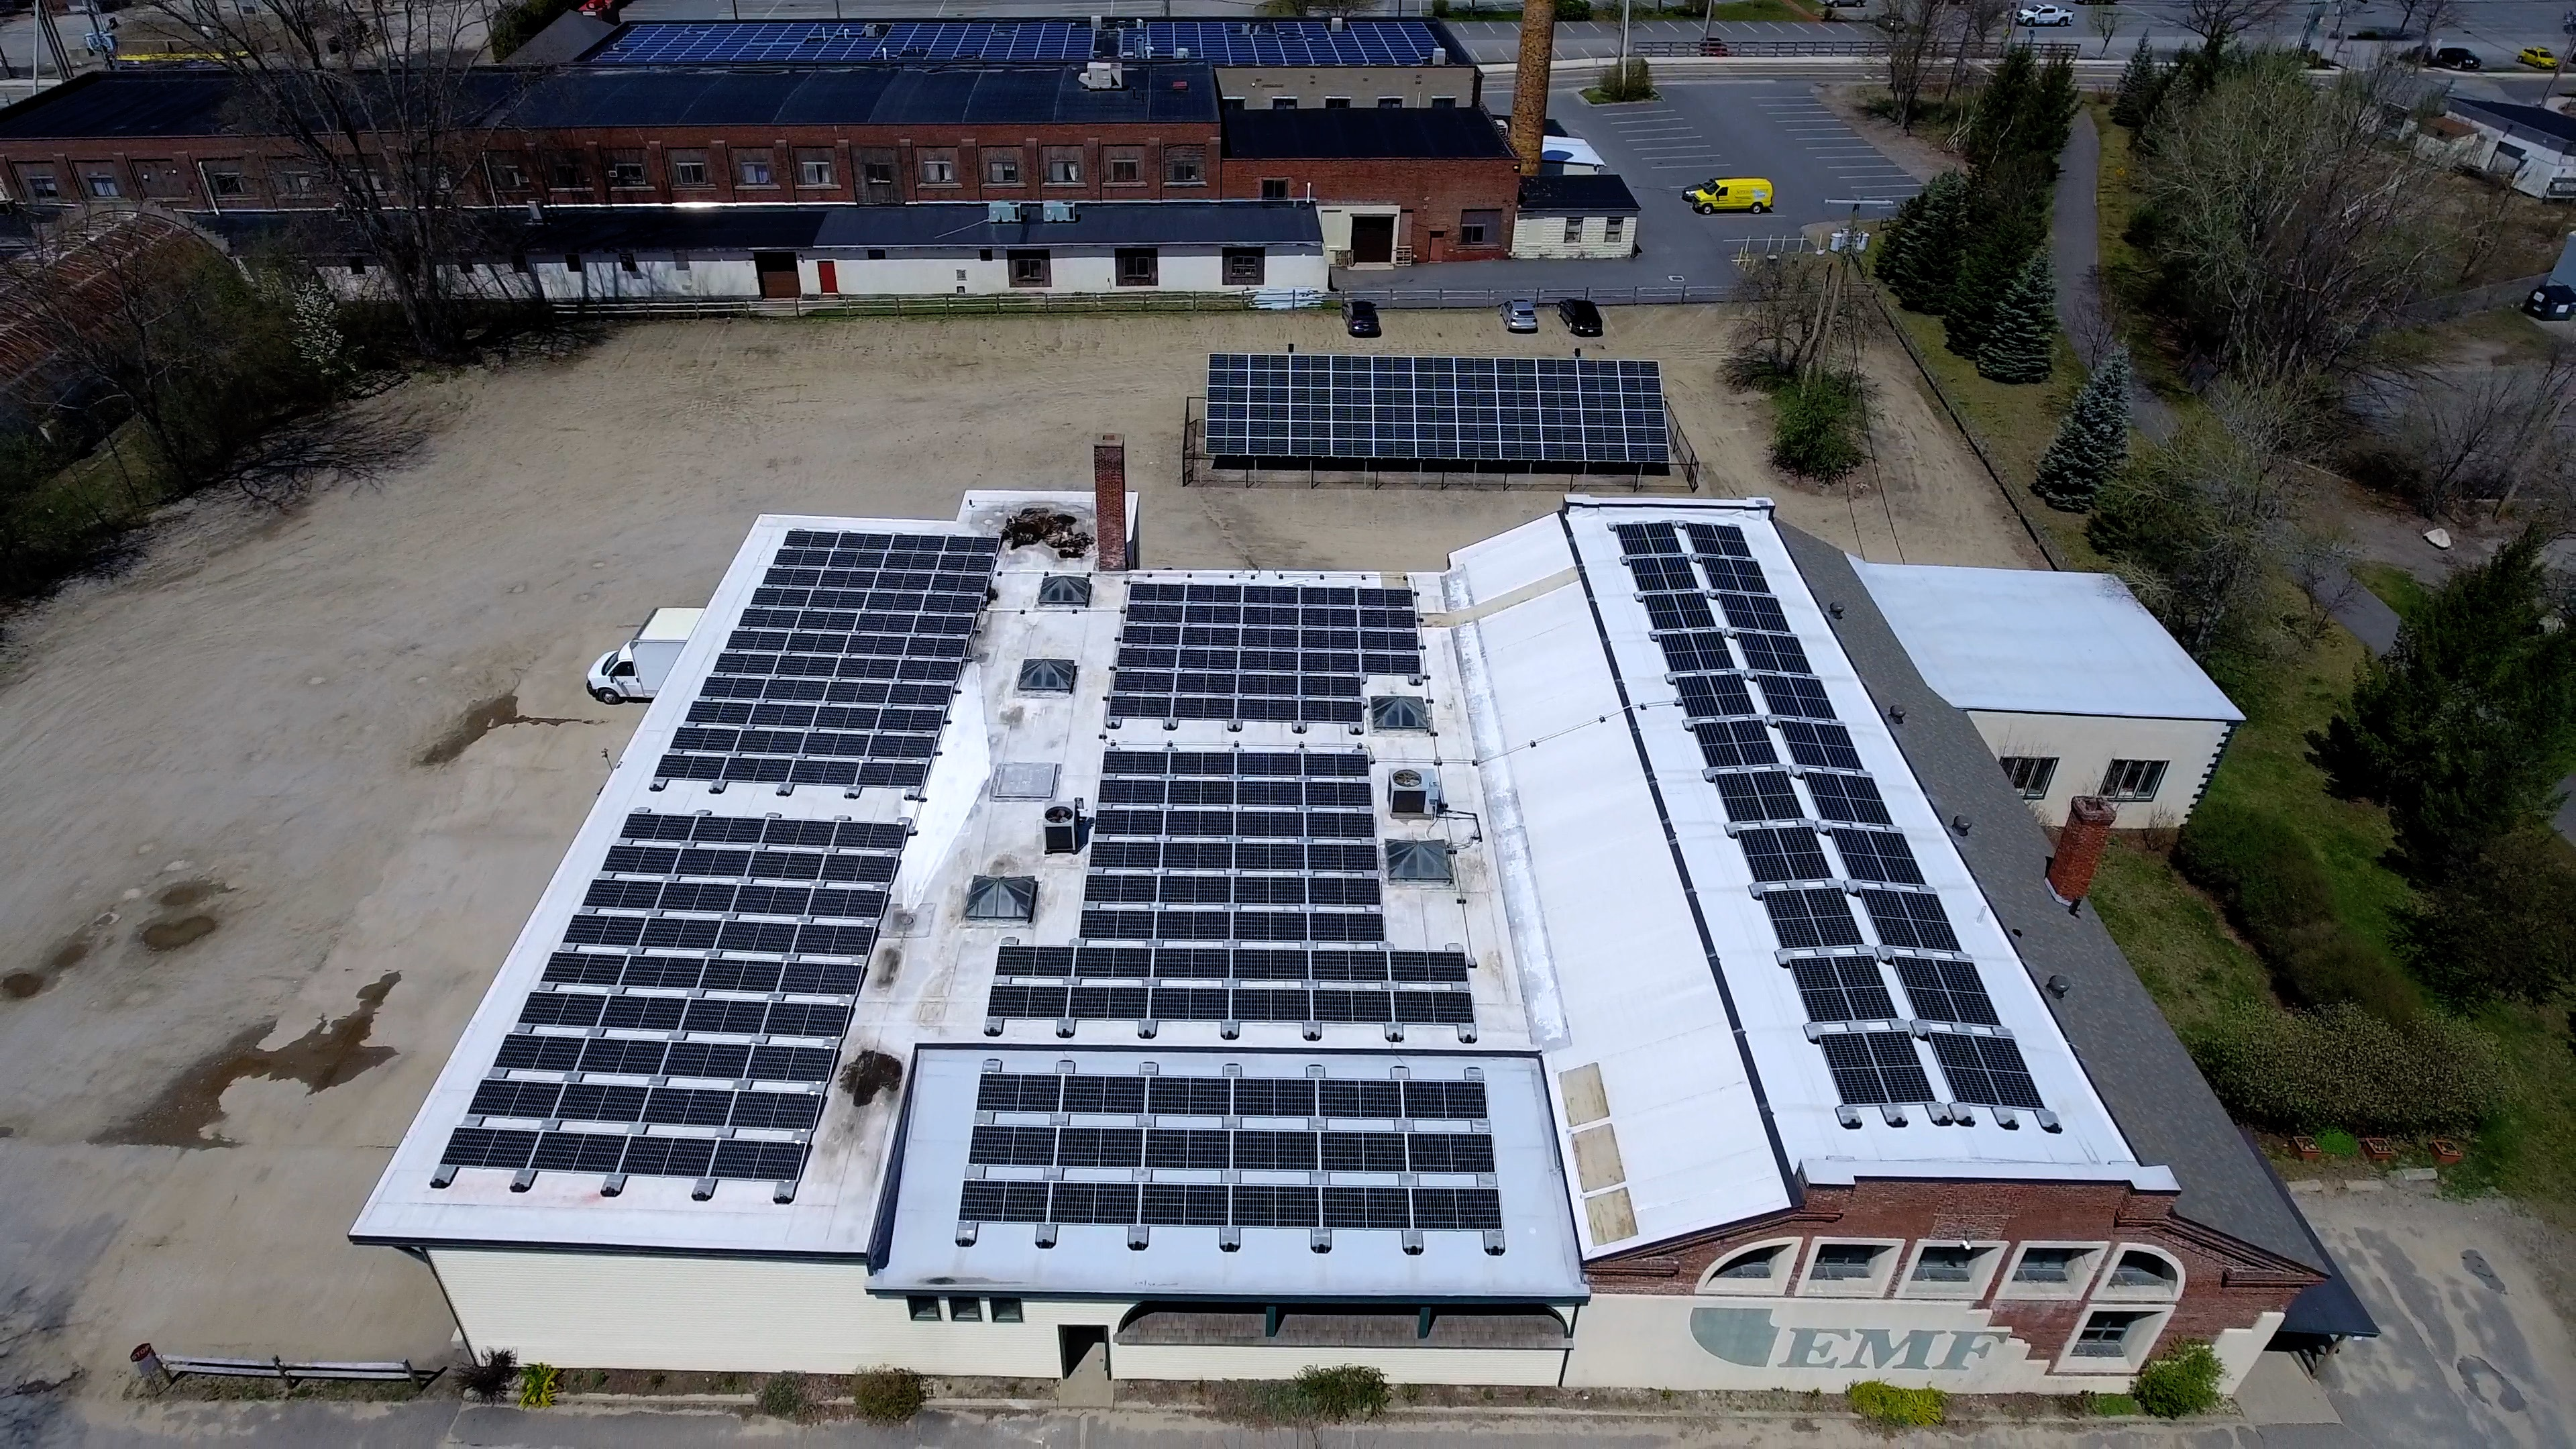 View of two buildings with roof solar installations and a ground installation